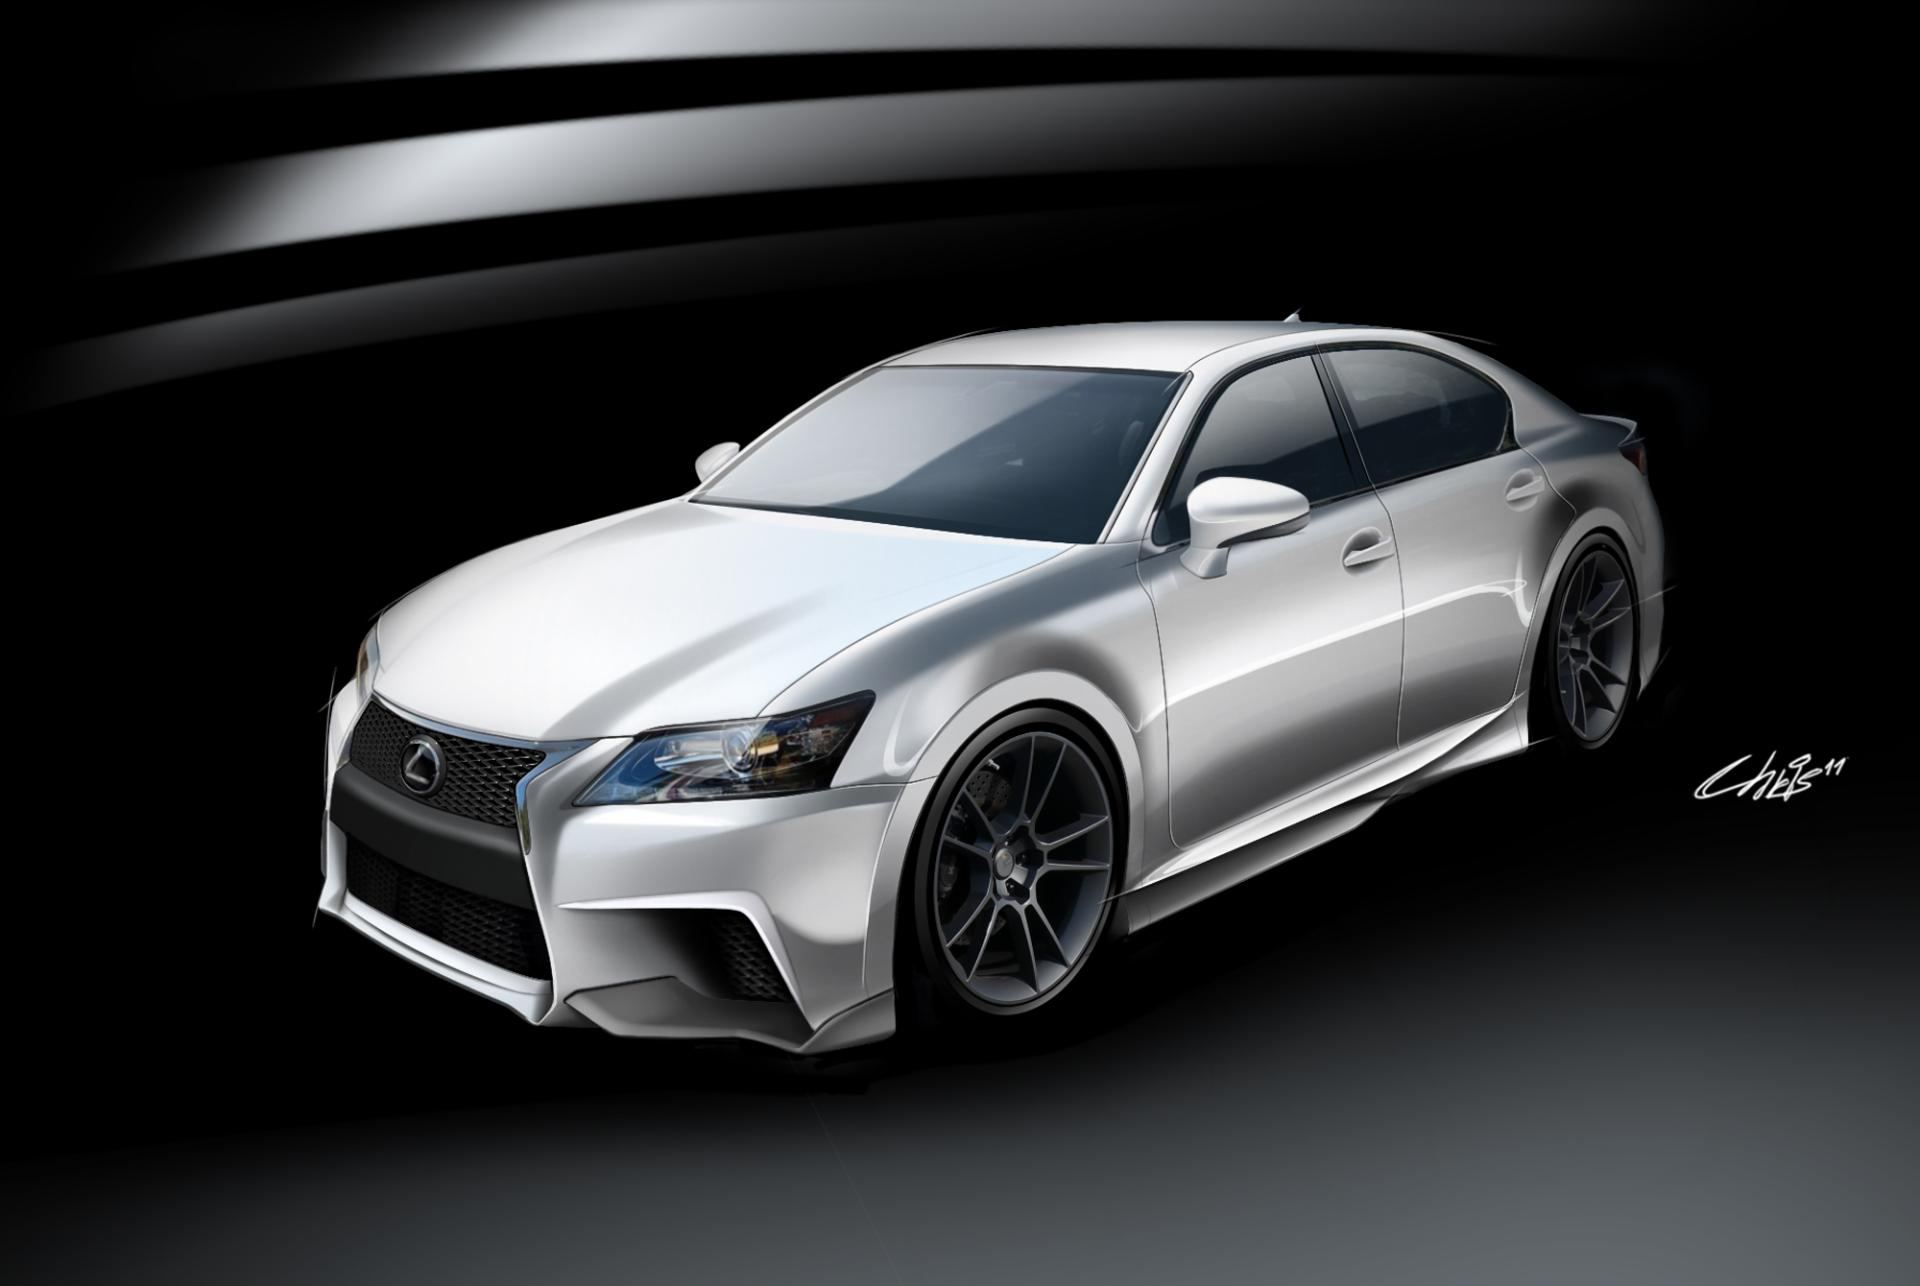 2009 Lexus Gs 350 >> 2011 Lexus Project GS F SPORT by Five News and Information